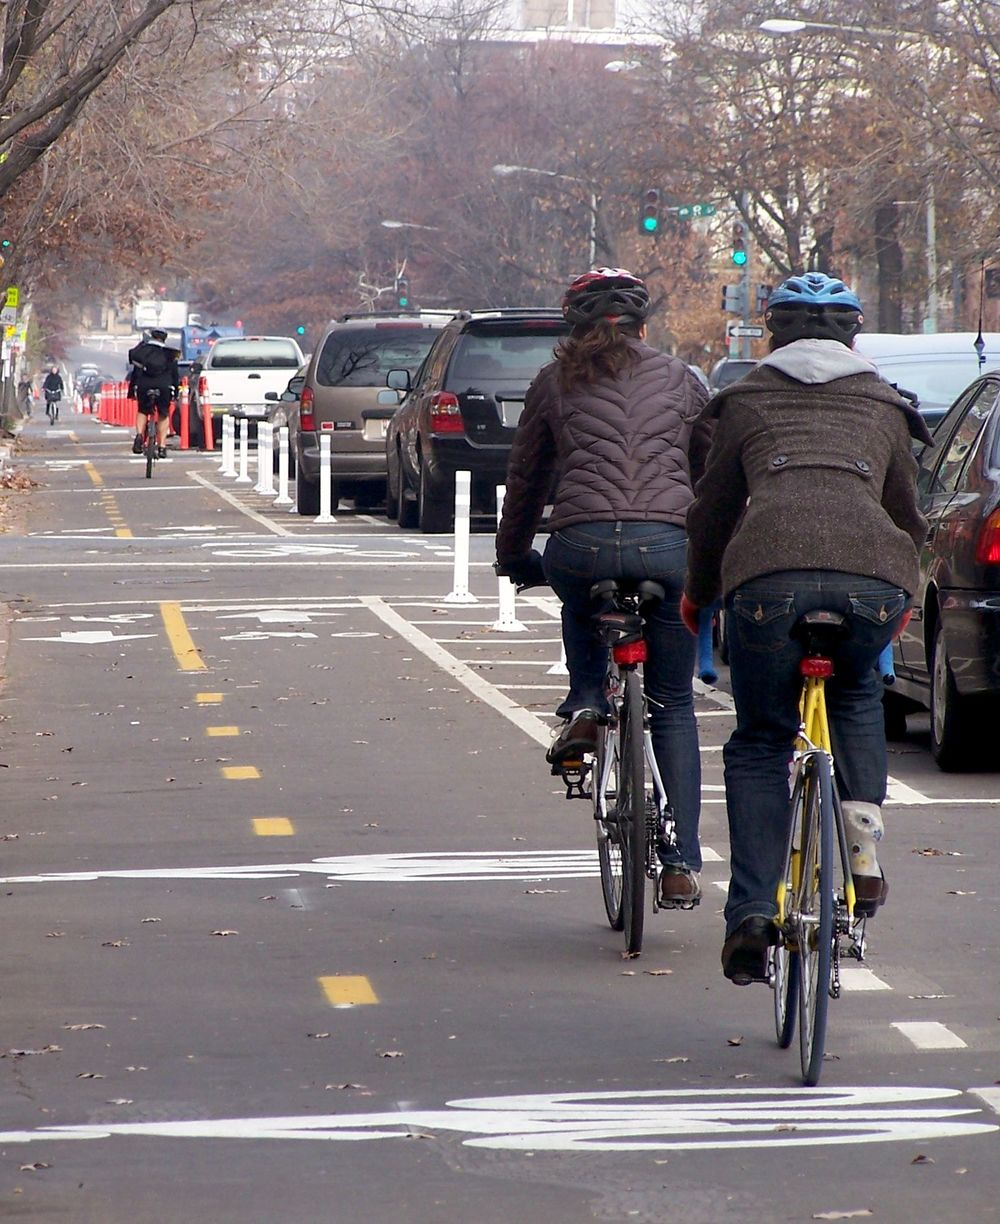 A cycle track in Washington, D.C. Photo courtesy of Paulo Couto and Heather Deutsch